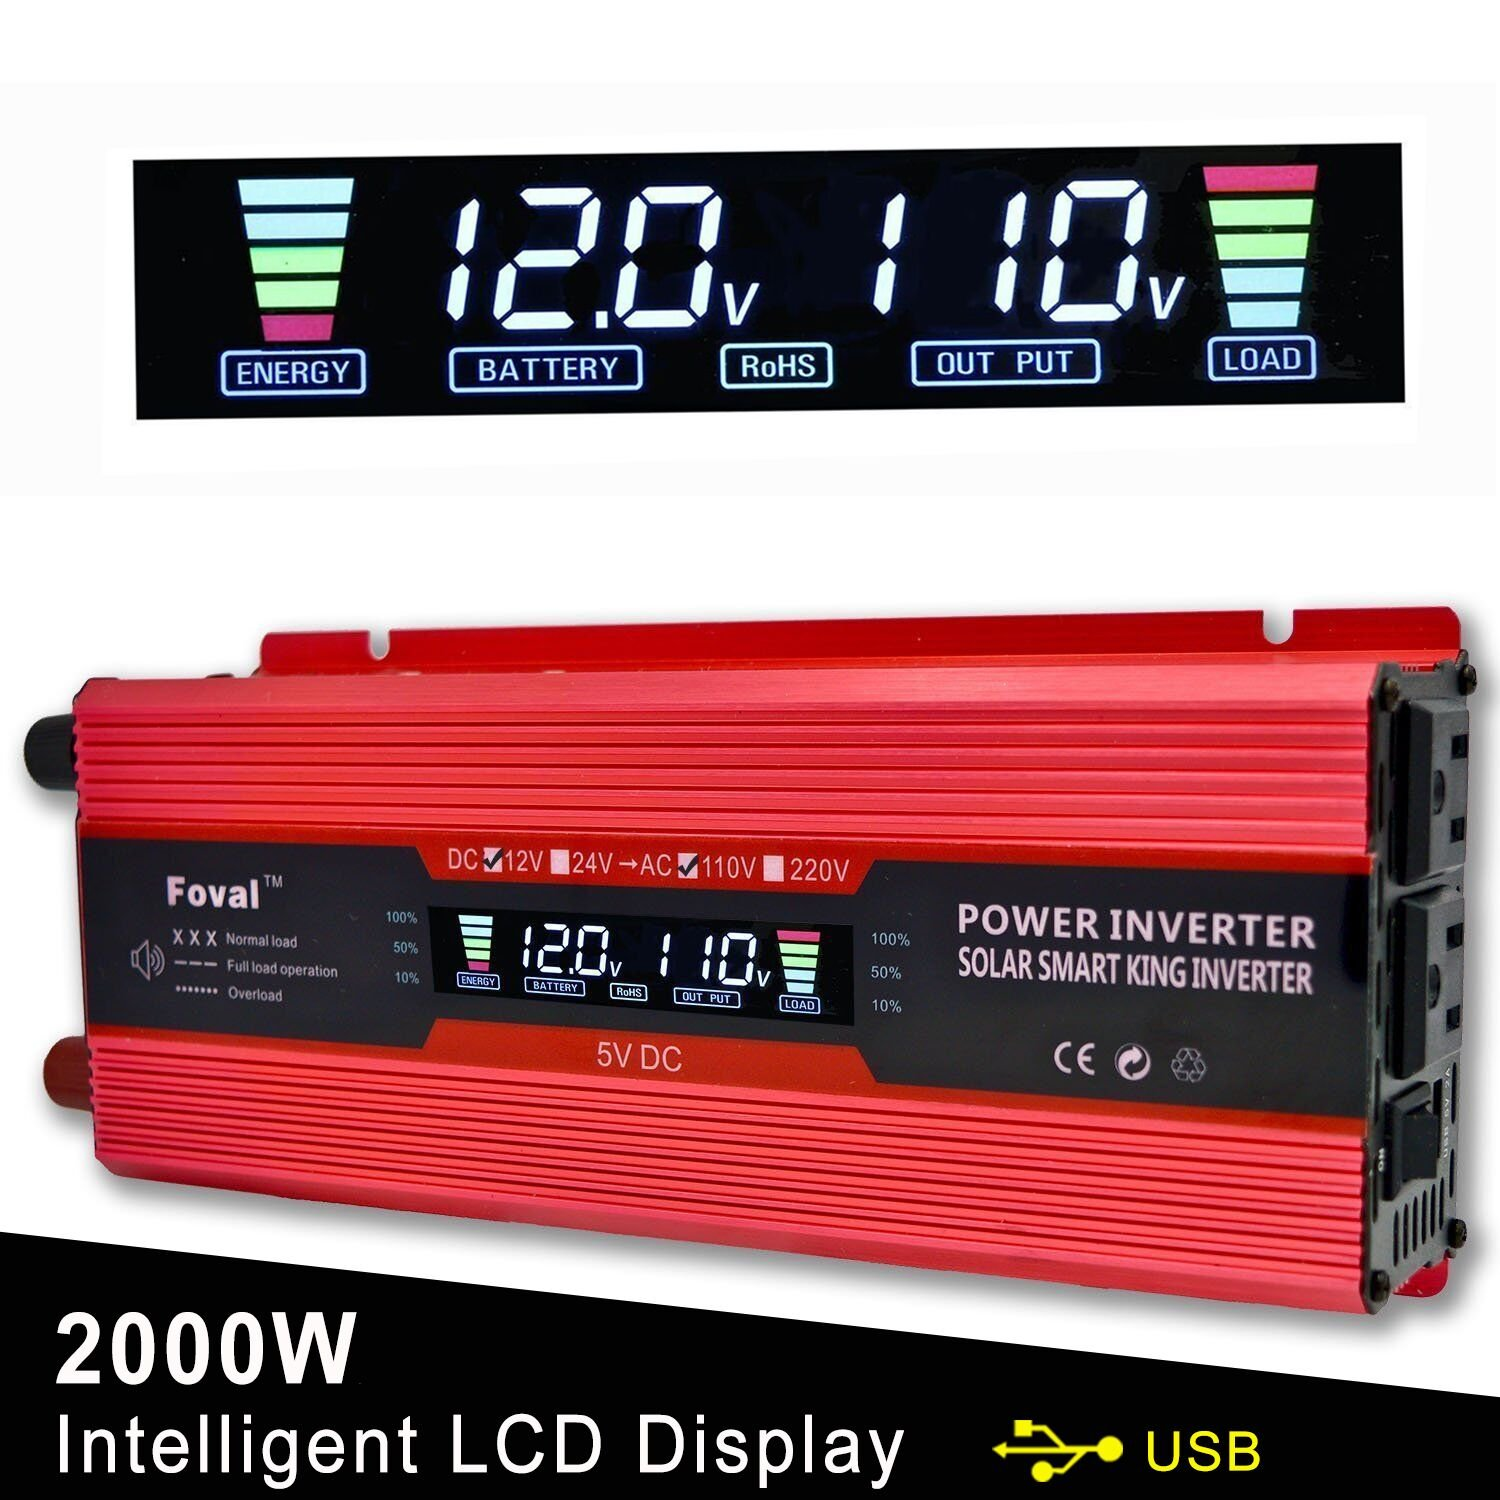 Lvyuan 1000W/2000W Power Inverter Dual AC Outlets and Dual USB Charging Ports DC to AC inverter 12V to 110V Car Converter DC 12V inverter With Digital LCD Display by Lvyuan (Image #1)